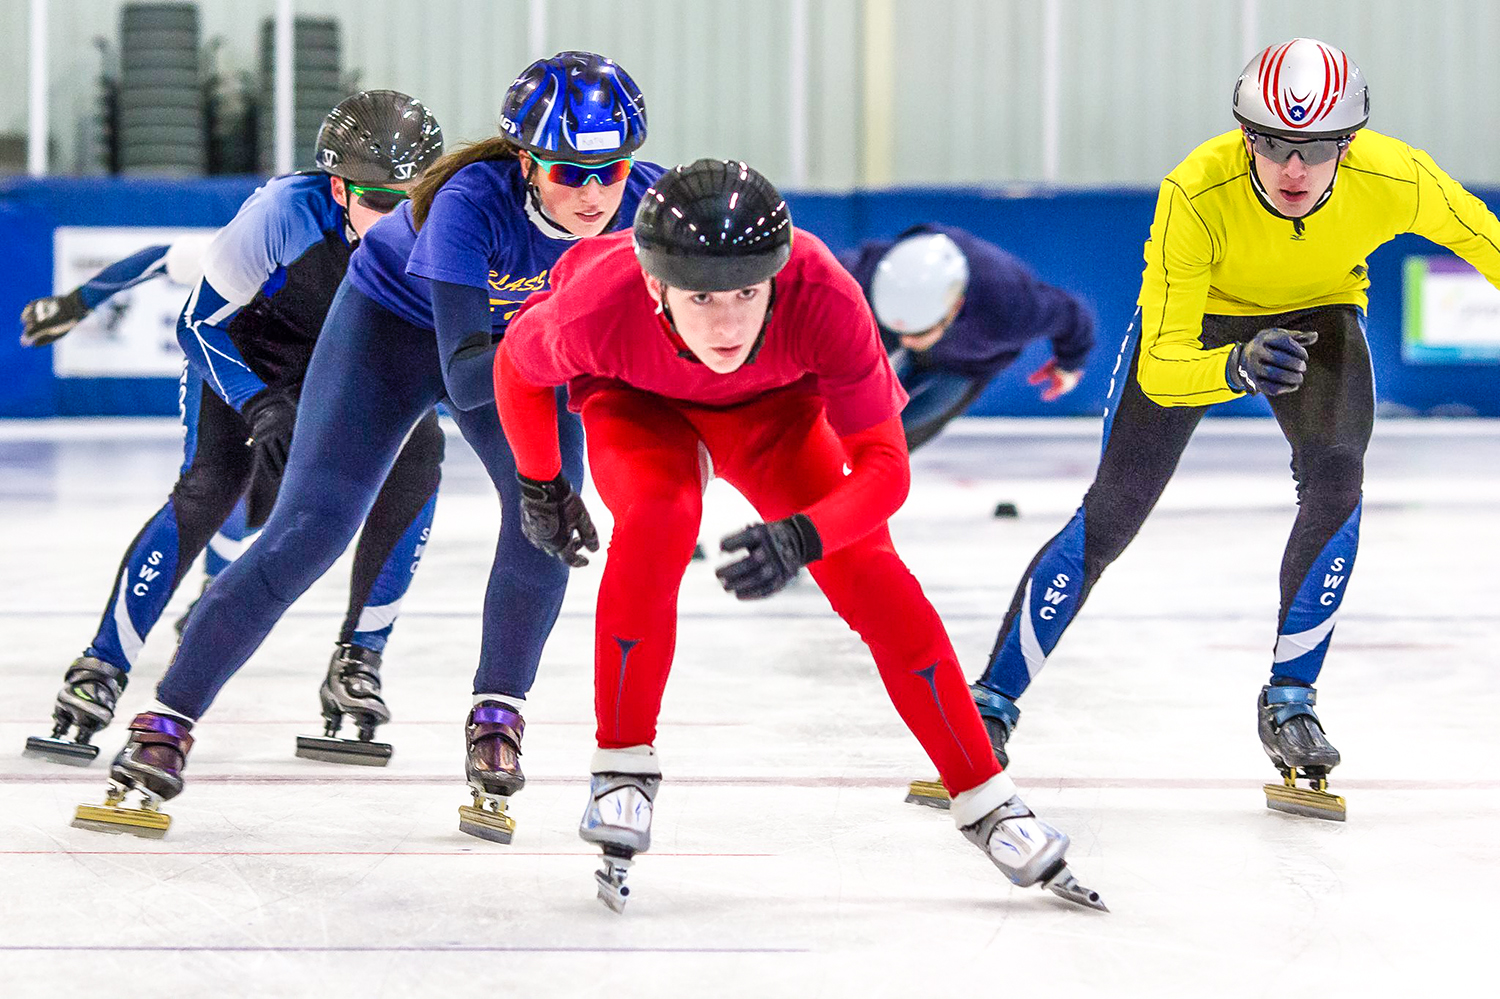 Speedskating offers recreational, competitive and cross-training opportunities.  Saratoga Winter Club